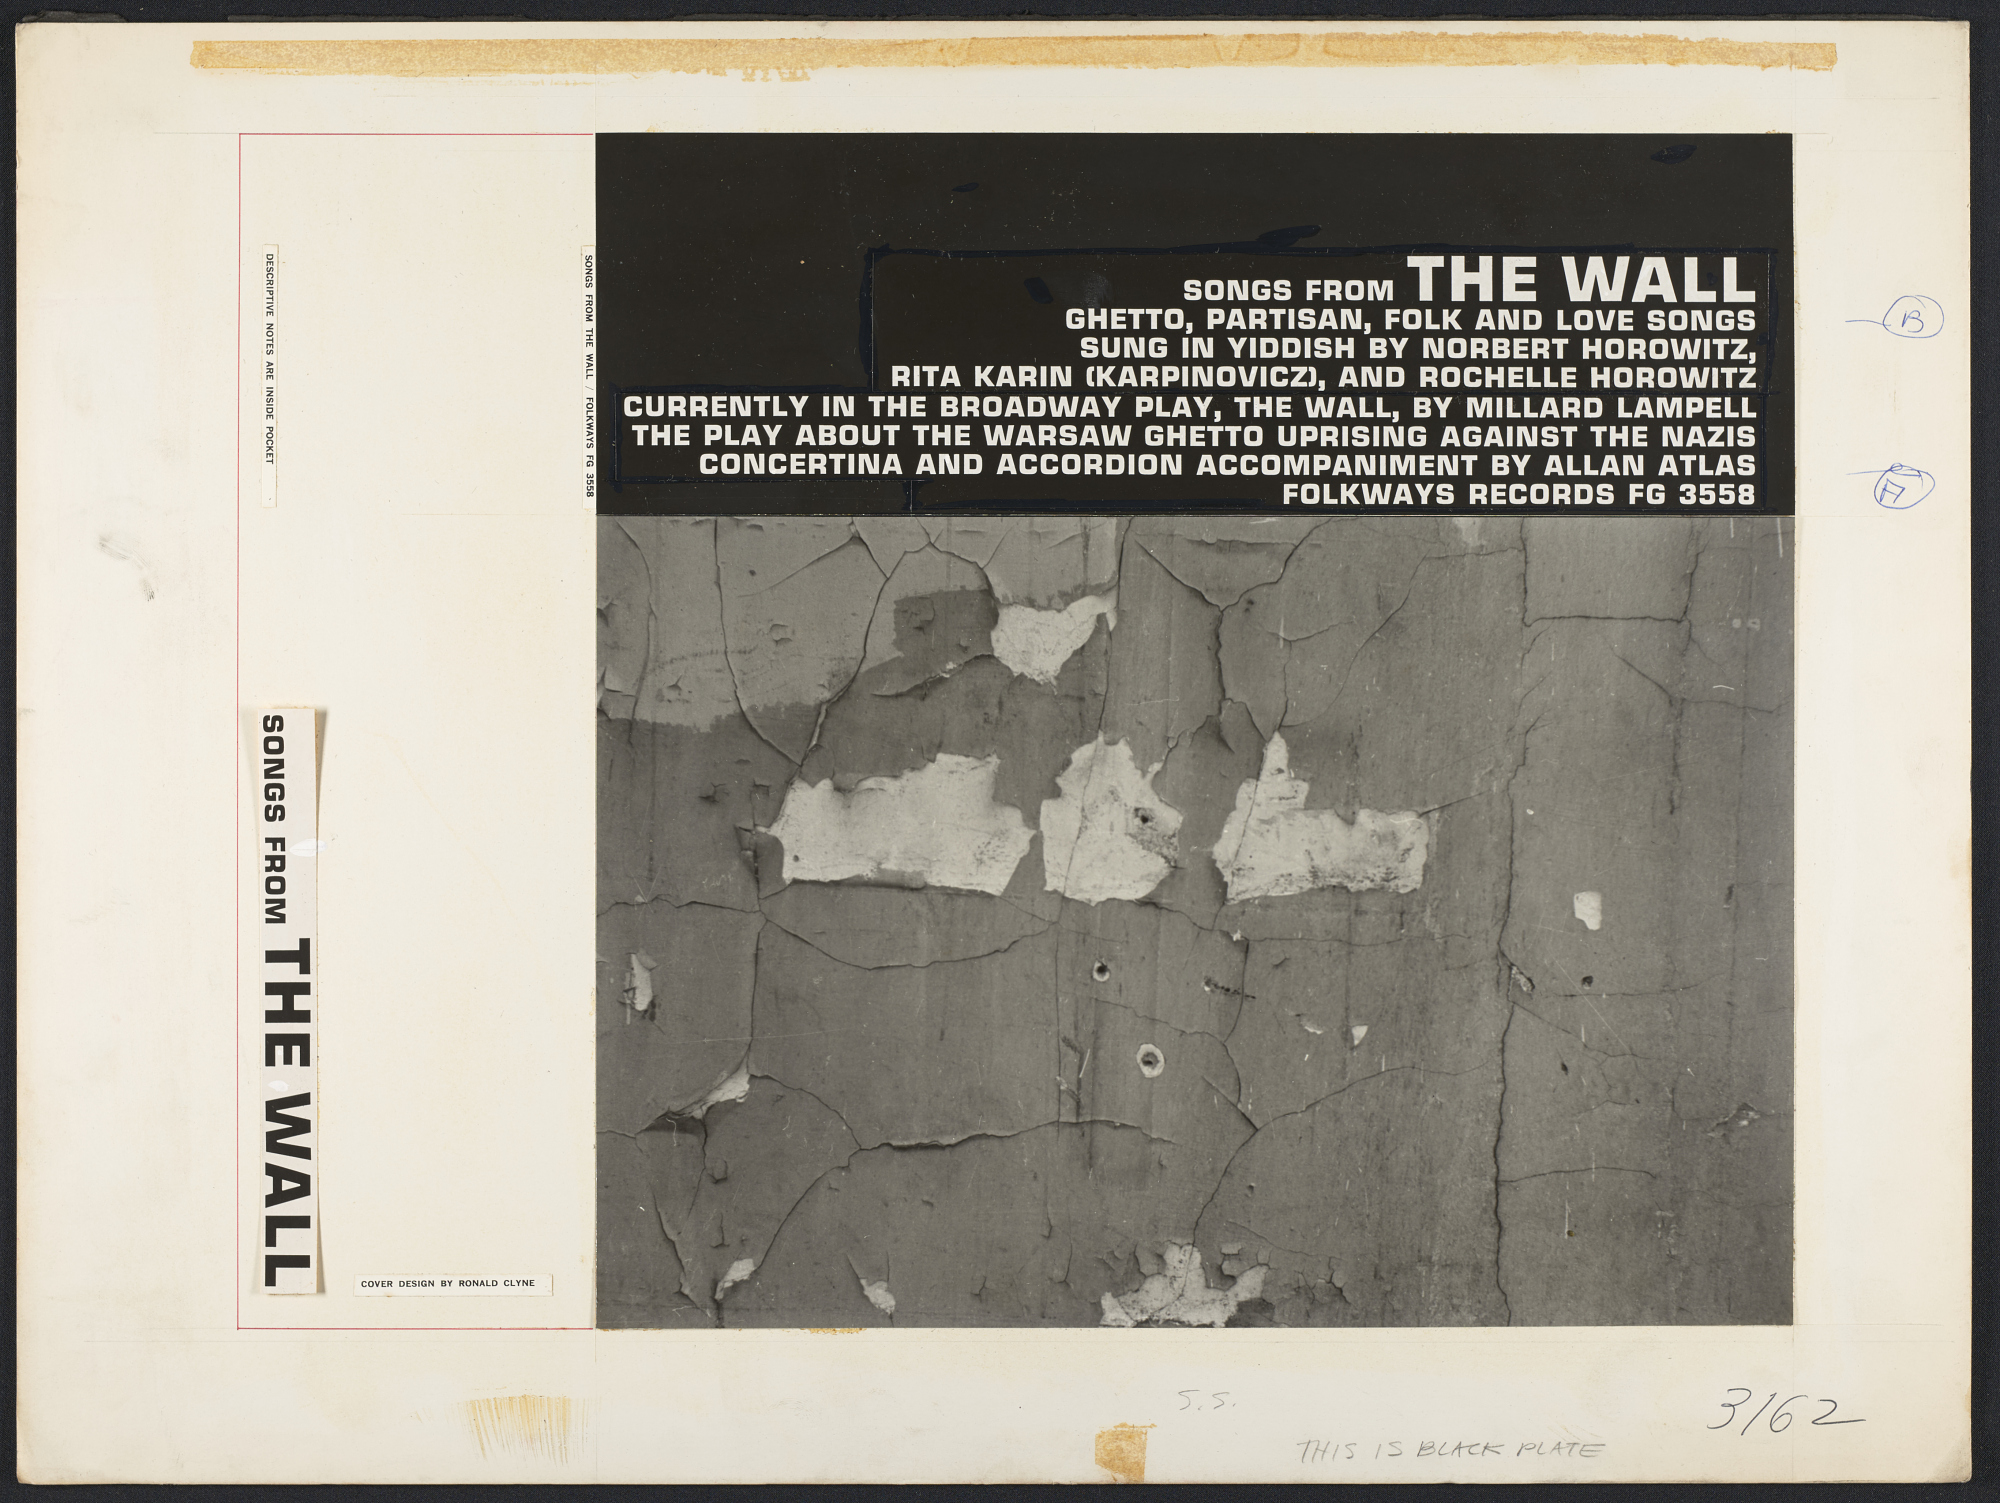 Songs from The Wall [sound recording] : ghetto, partisan, folk and love songs / sung by Norbert Horowitz, Rita Karin, Rochelle Horowitz